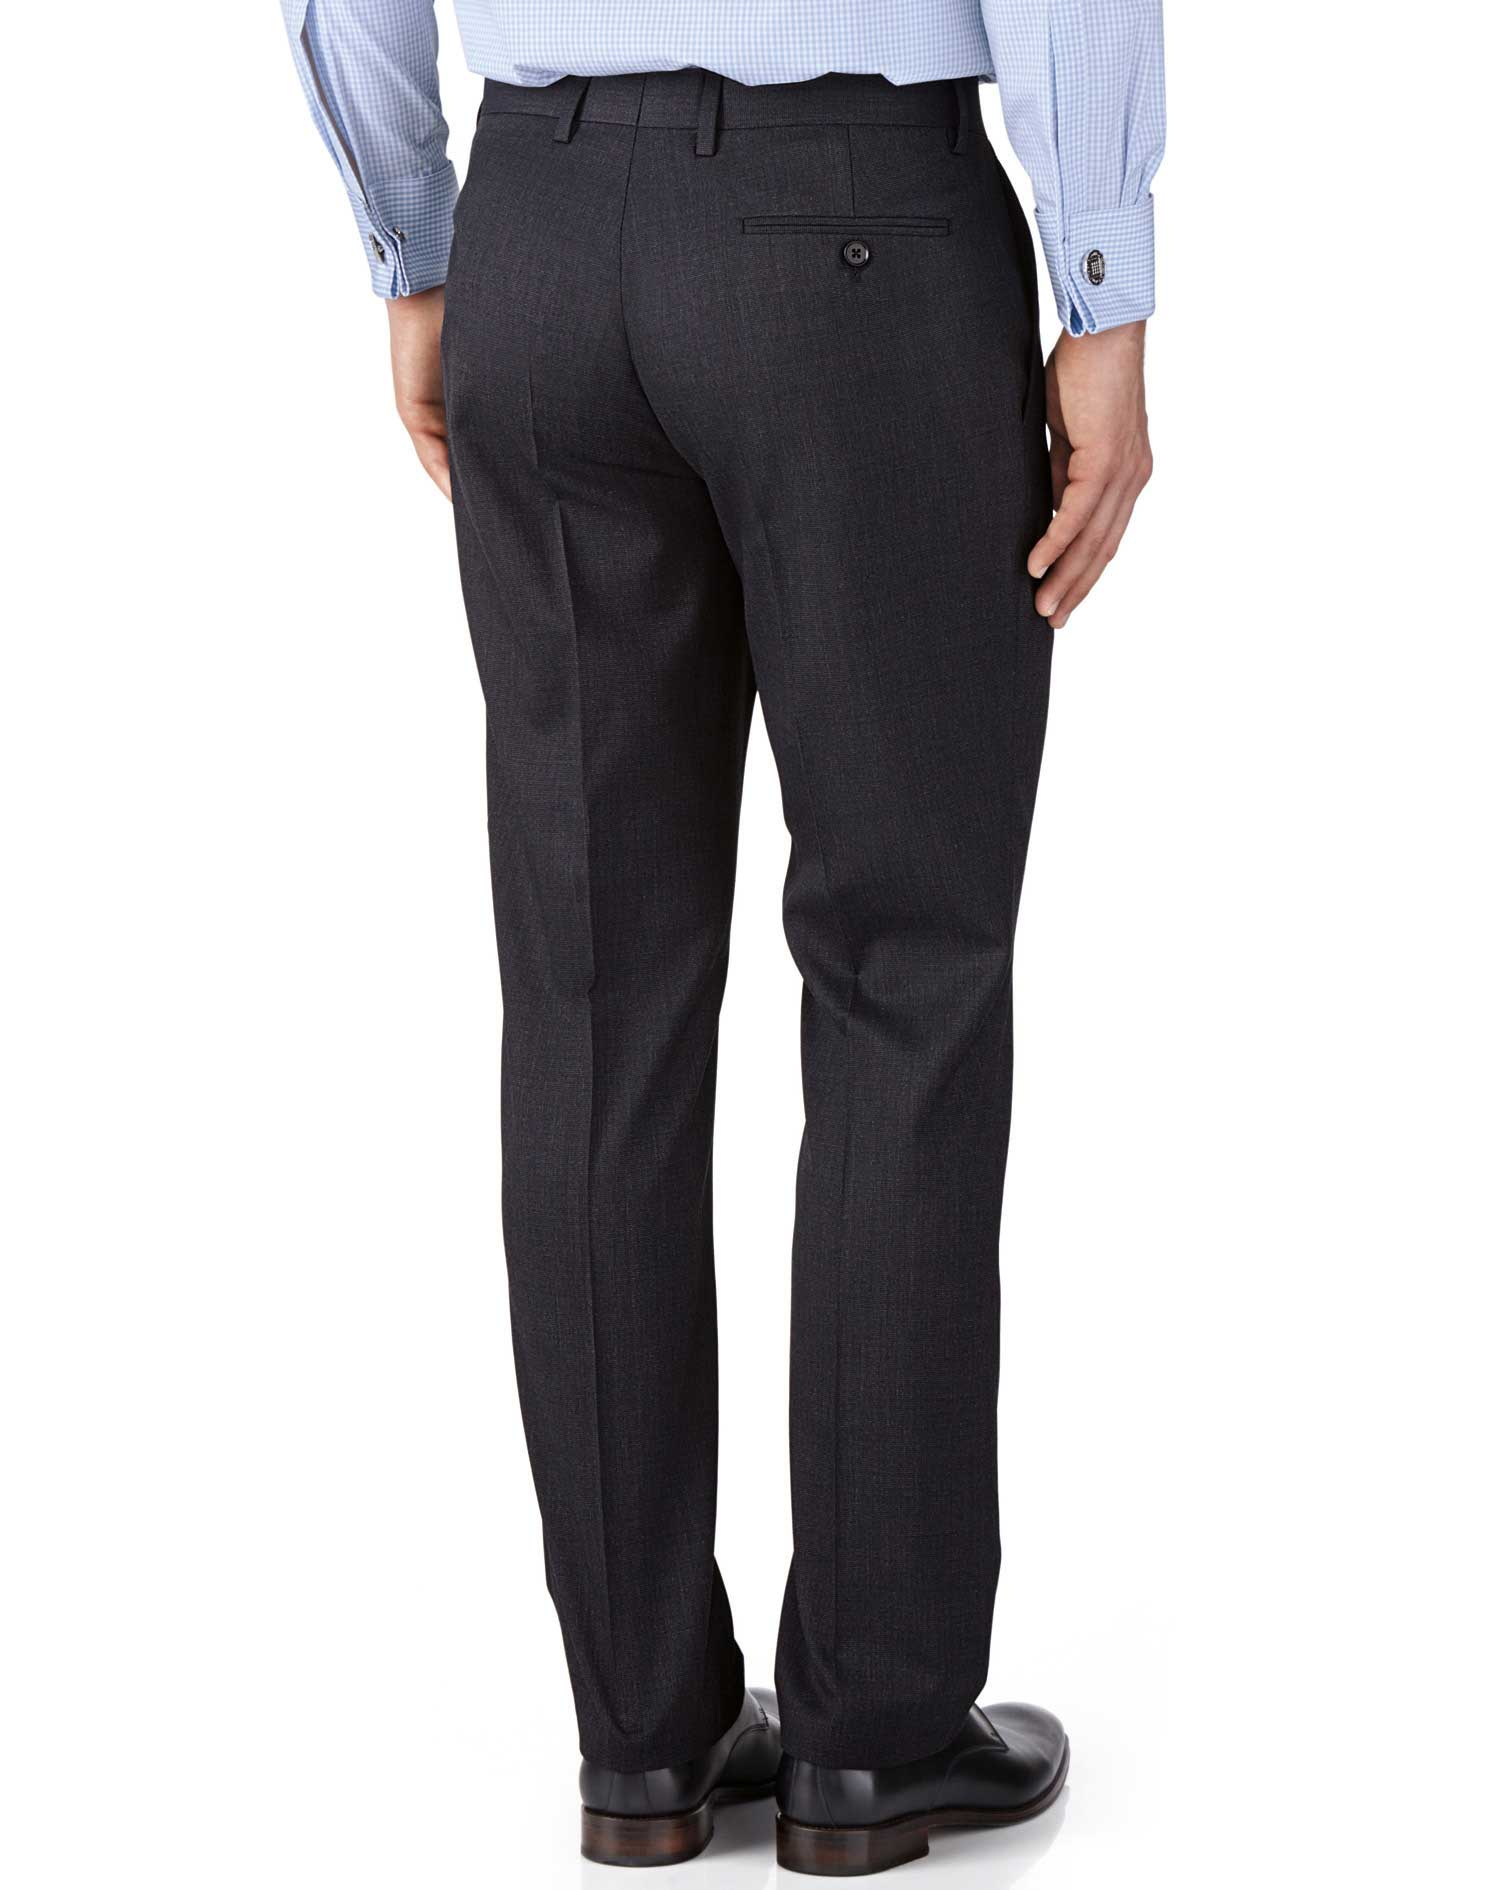 Charcoal slim fit end-on-end business suit pants